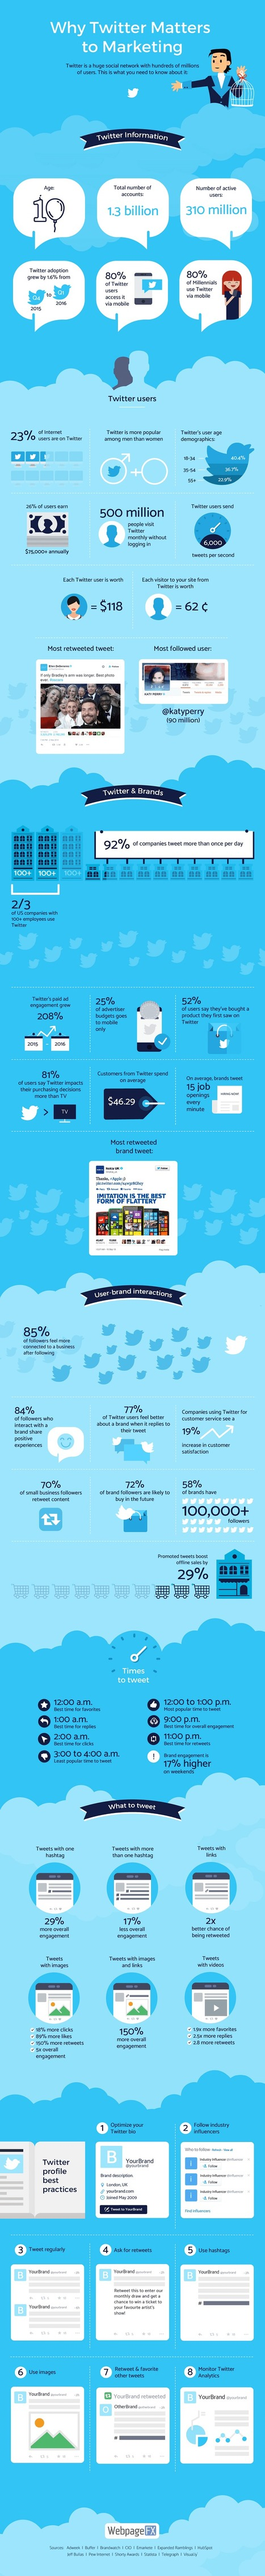 Why Twitter Matters to Marketing #Infographic | Digital boards | Scoop.it